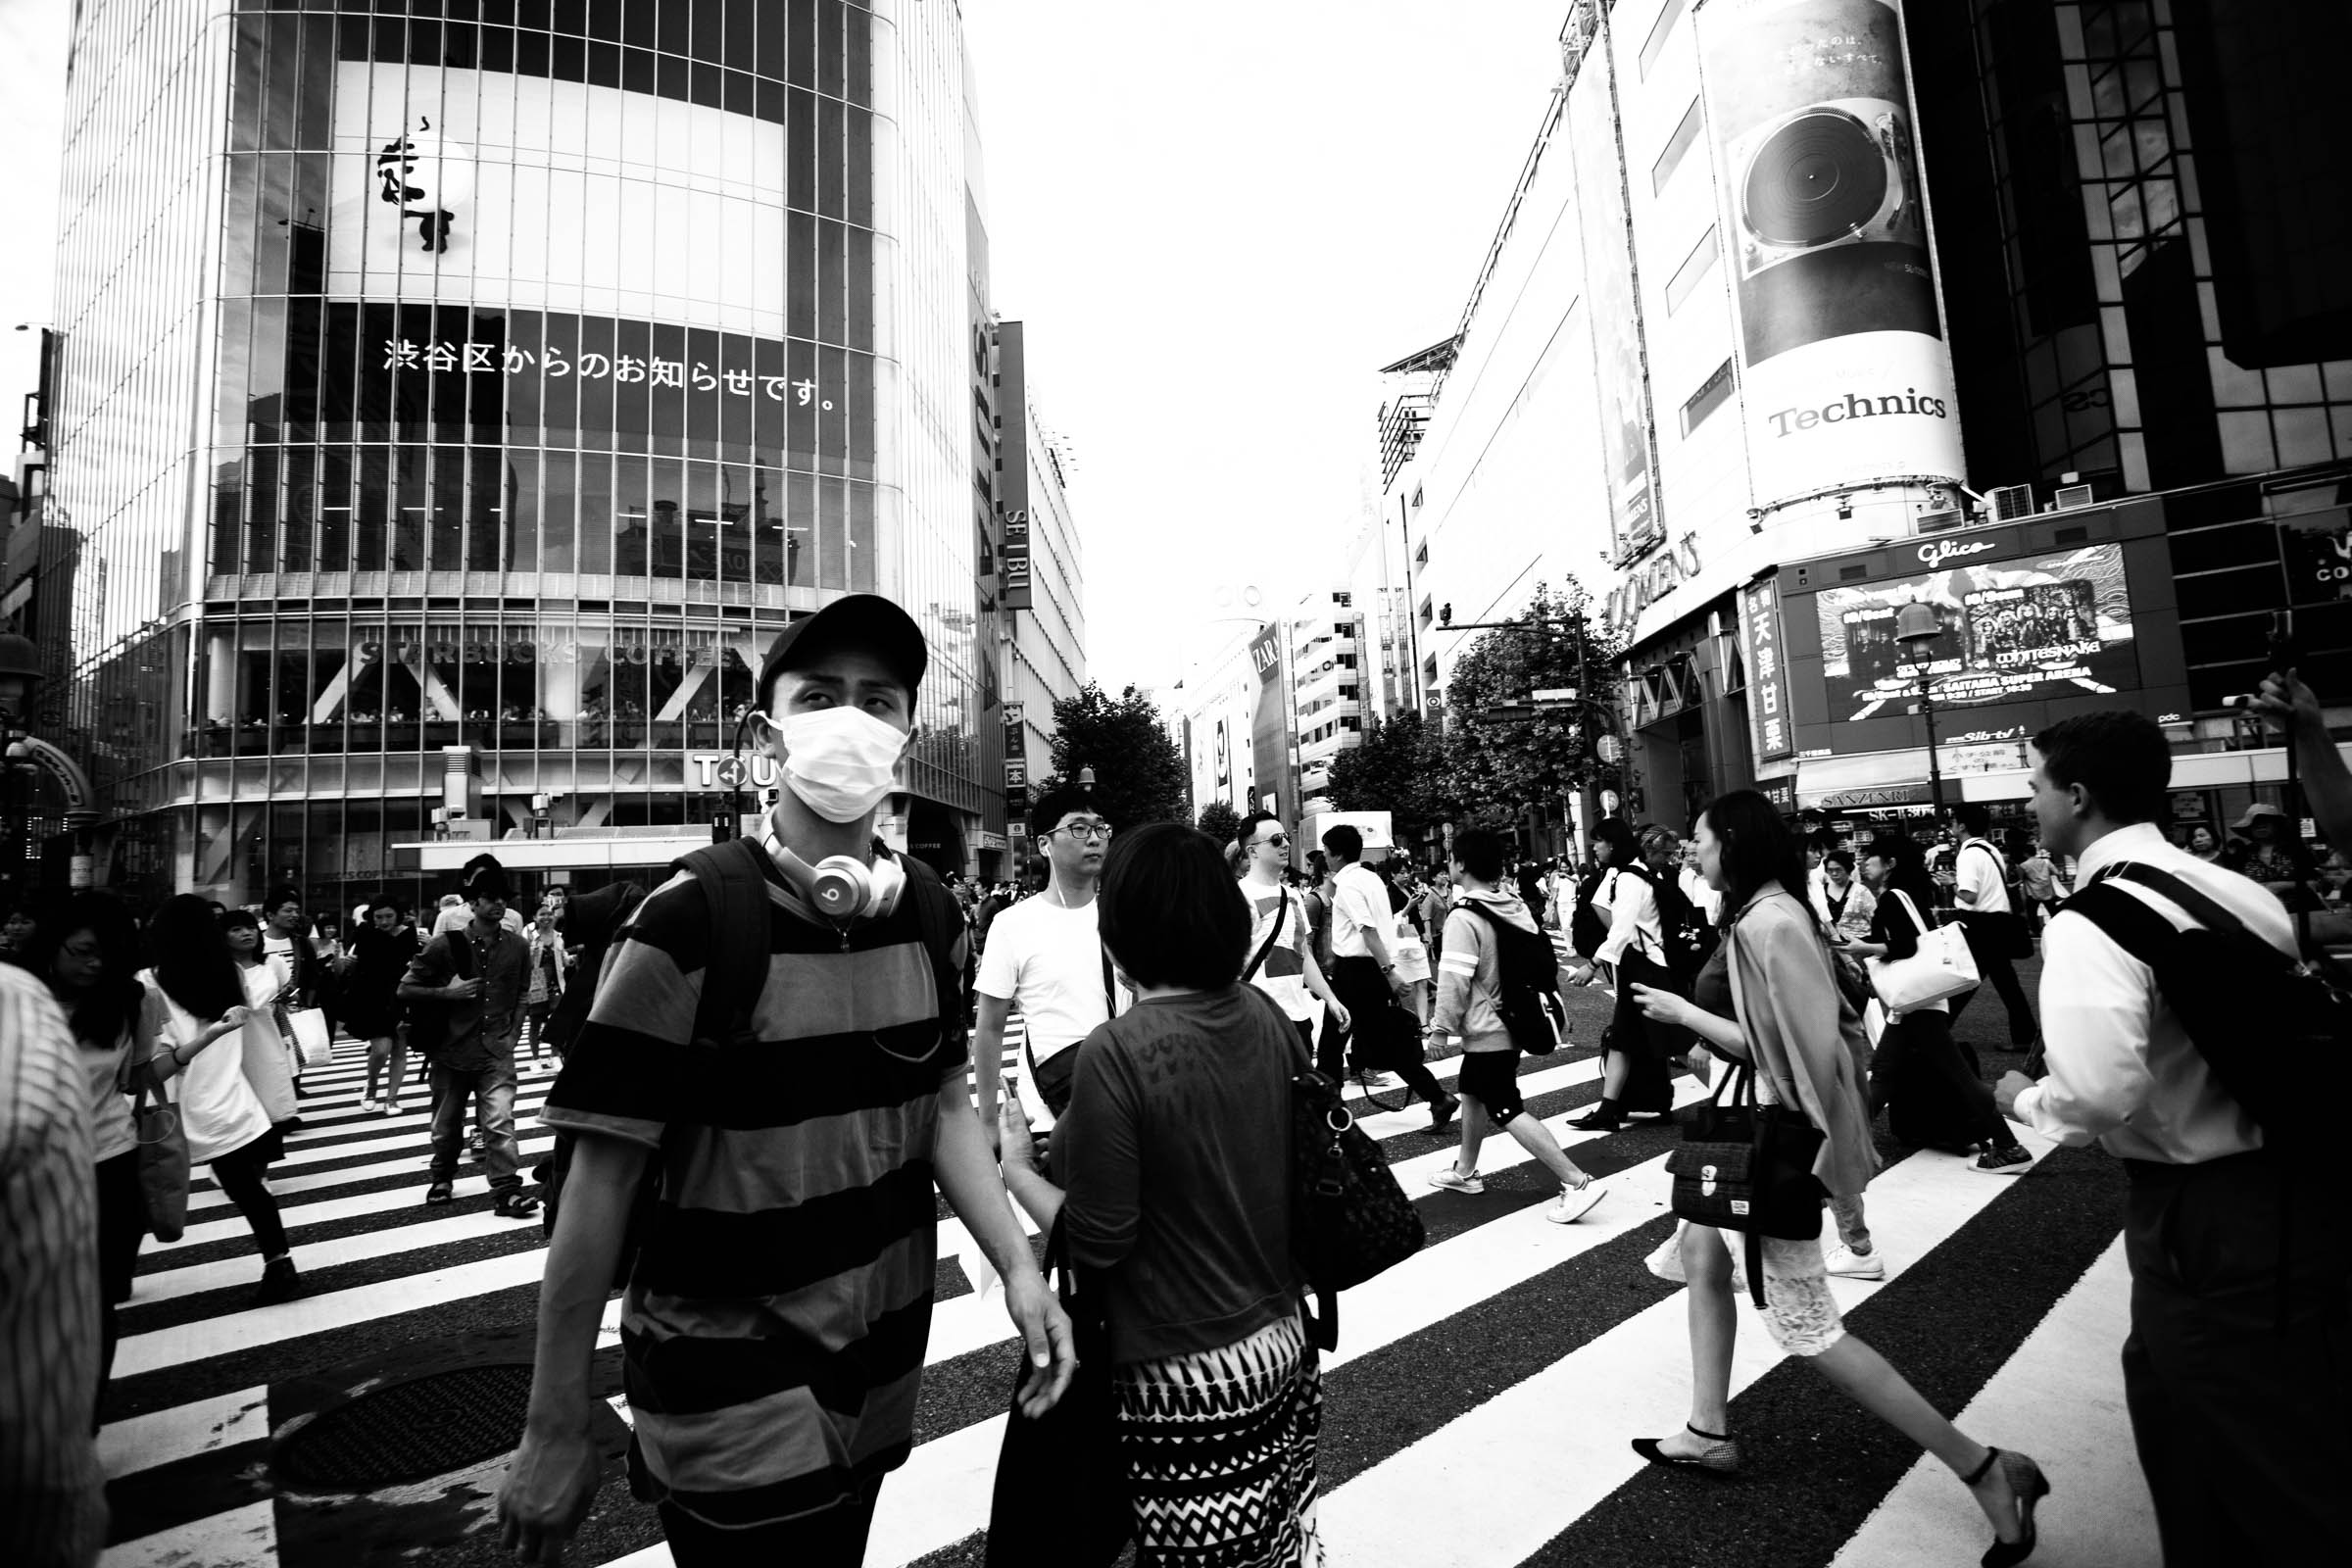 Chacon Images_Japan_Web-41.jpg